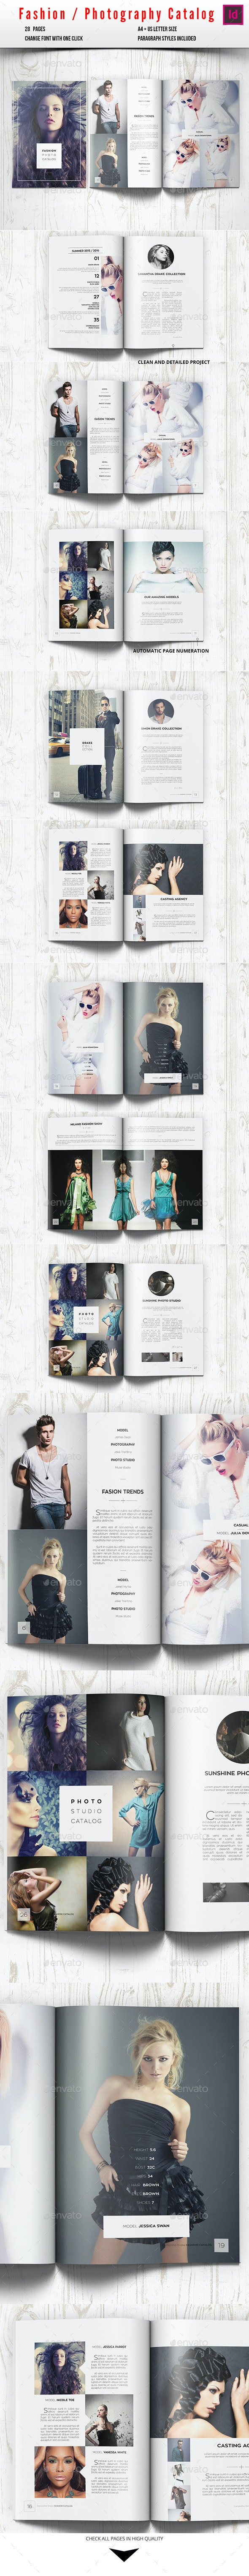 Fashion Photography Catalog / Brochure - Catalogs Brochures